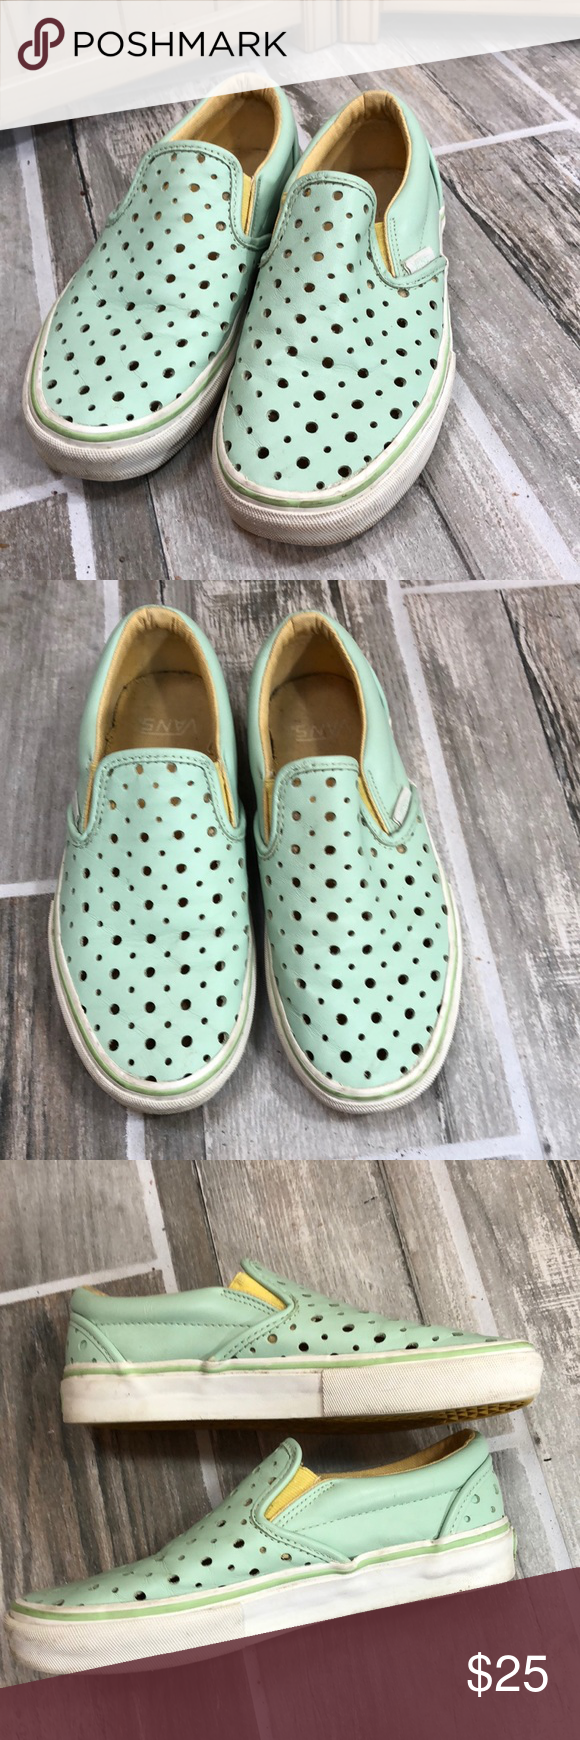 ba0d3ee72bc8 Vans Mint Green Leather Slip On Sneakers Mint green leather with swiss  cheese perforated holes. Classic slip on. Preowned with gentle signs of  wear.